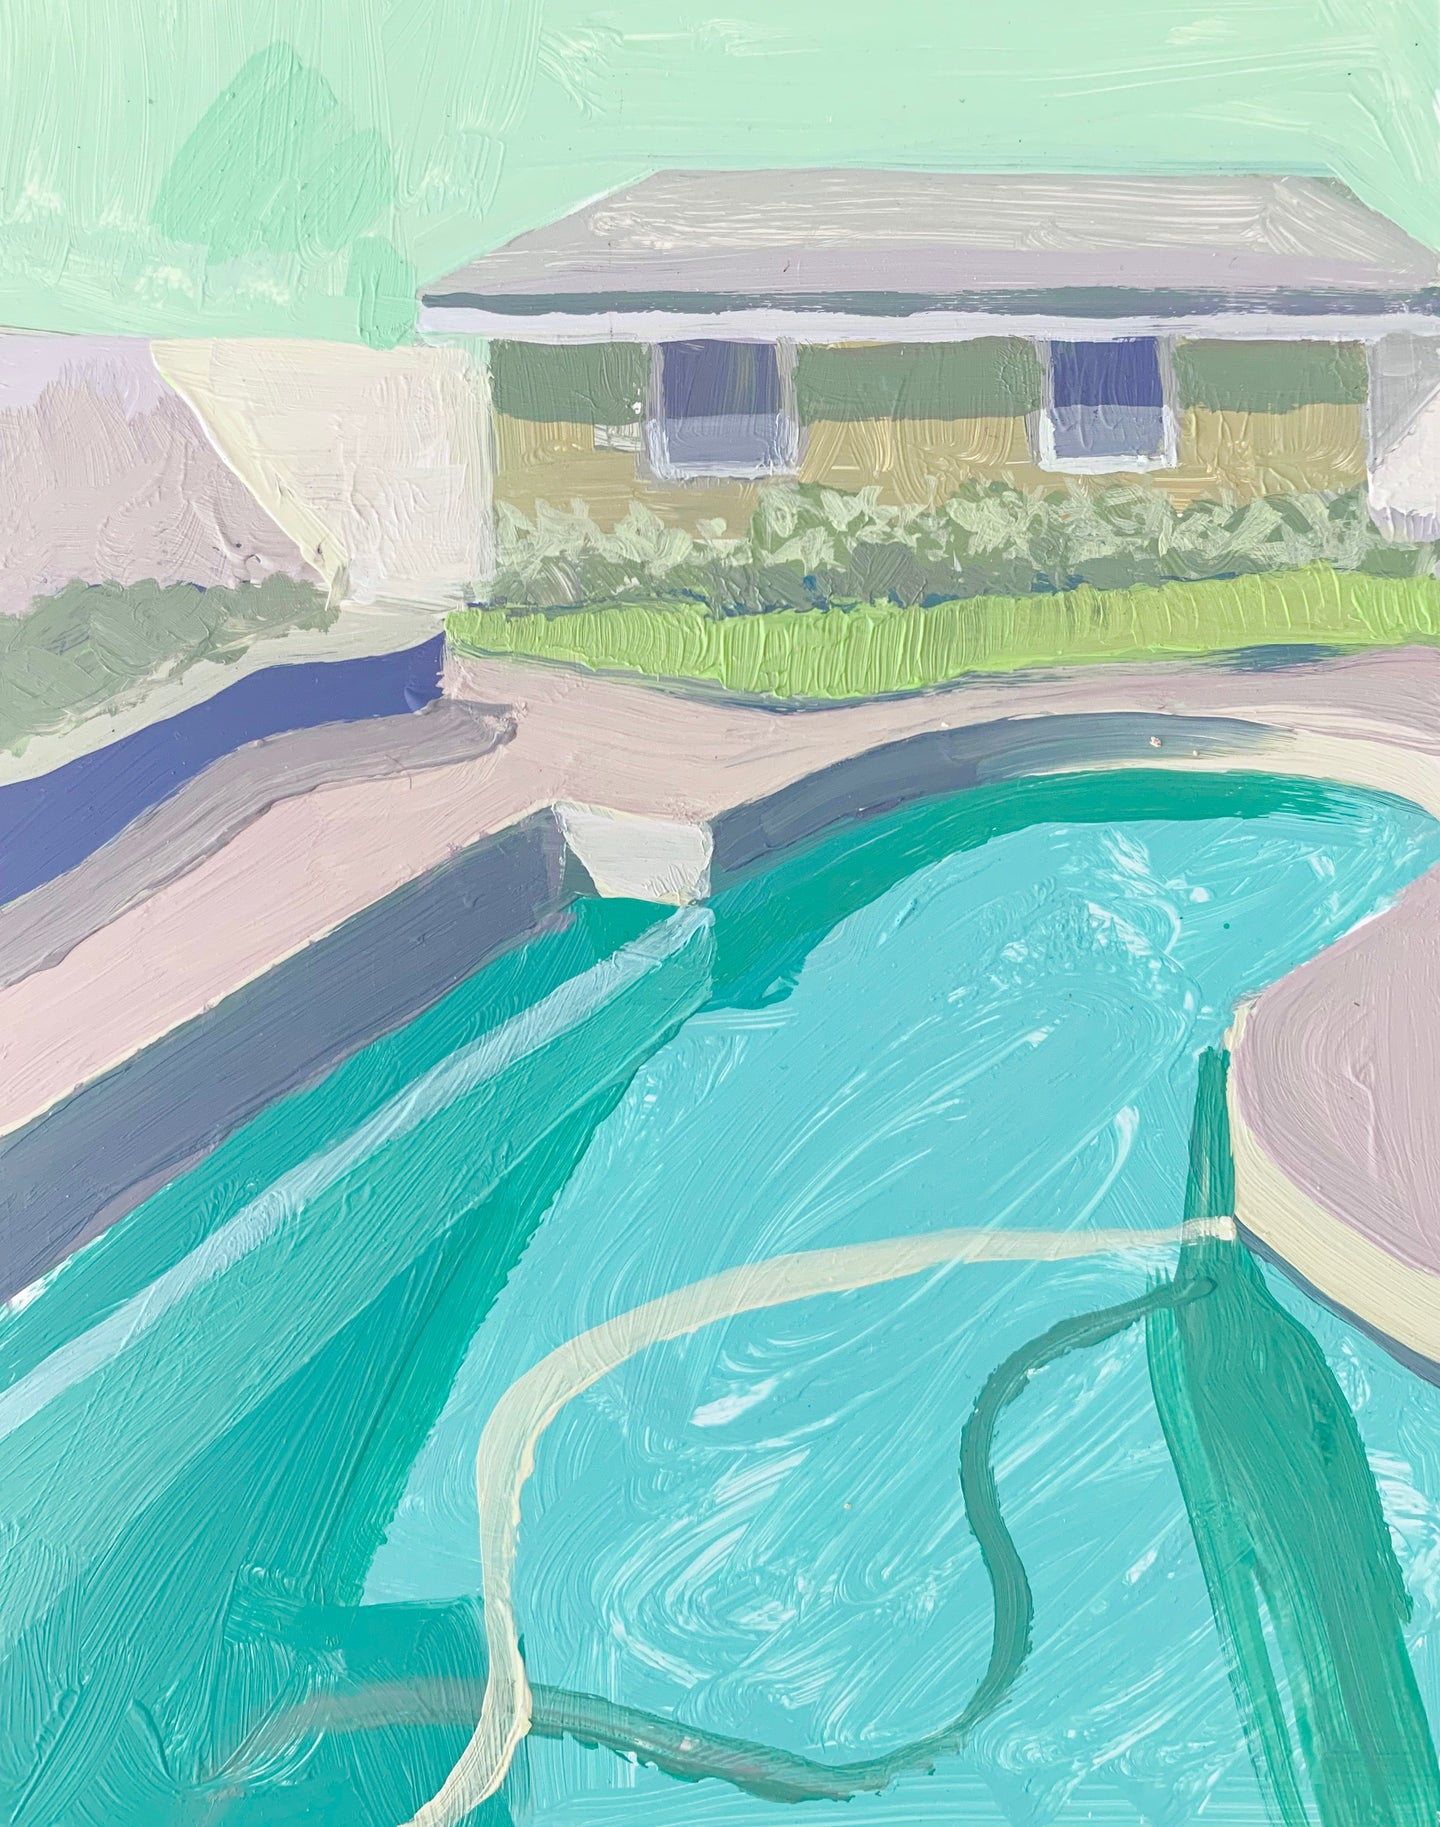 Pool House in Emerald, 8